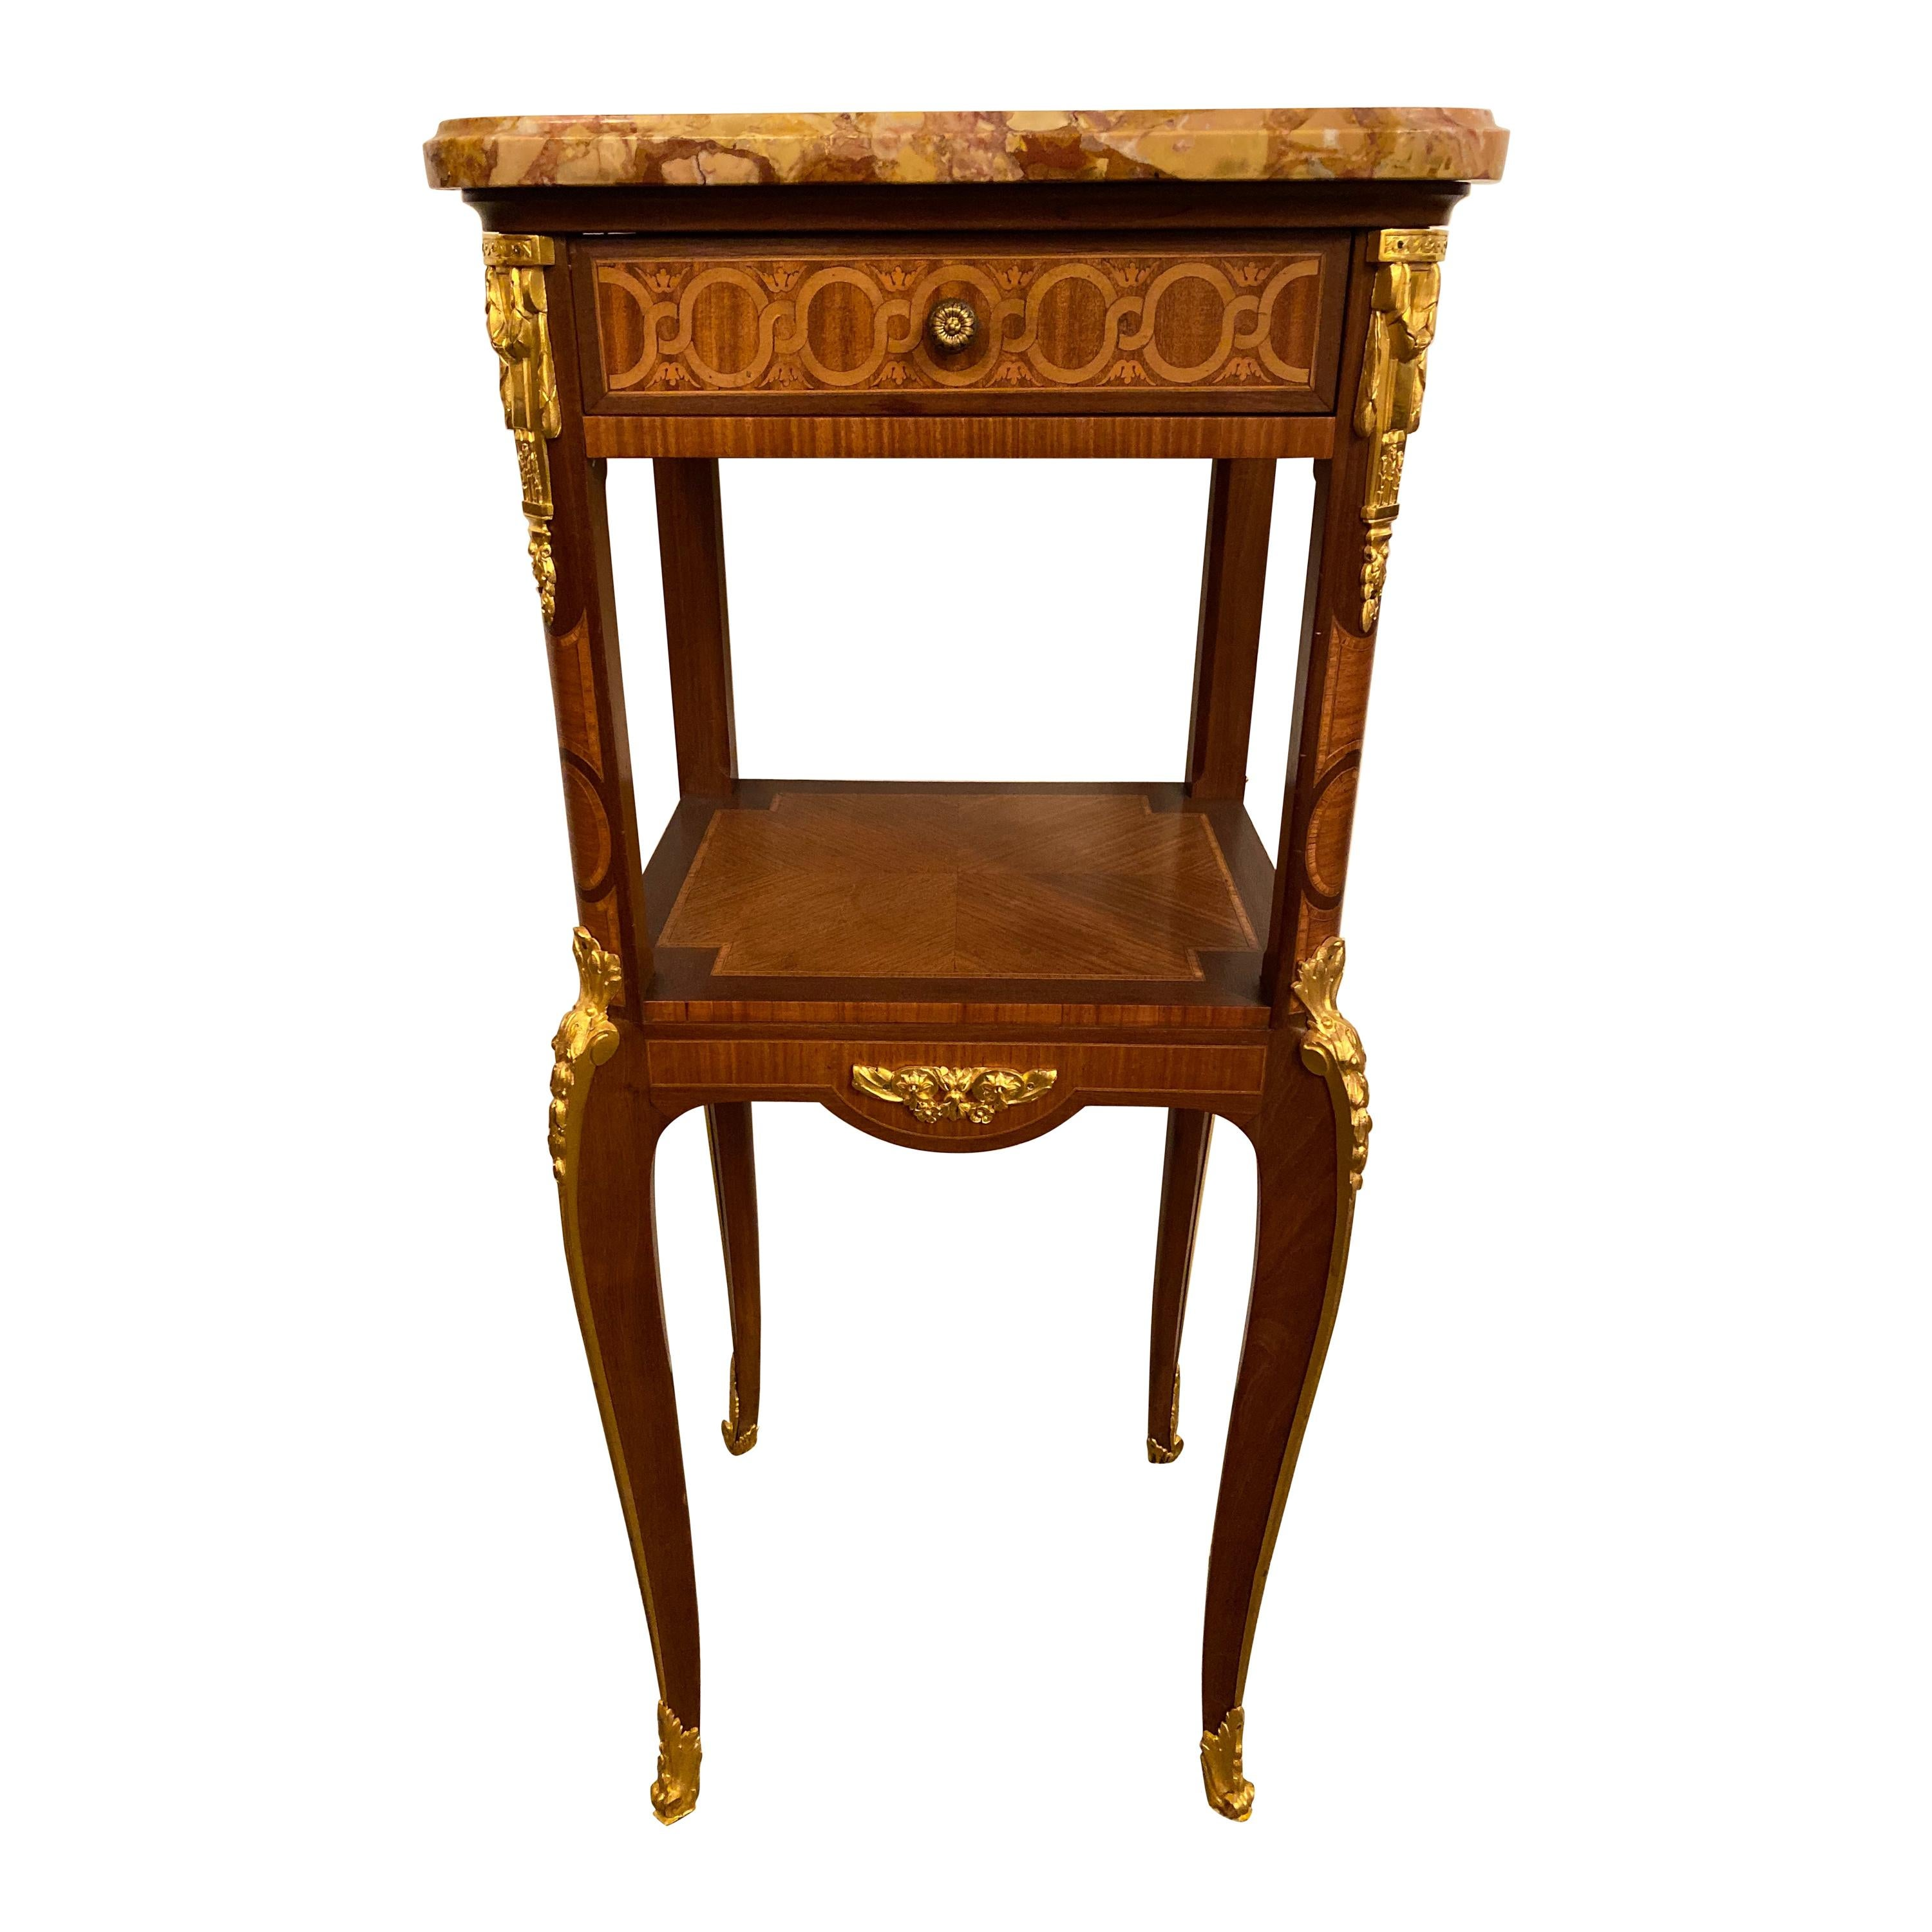 Louis XV-XVI Style Marble-Top Side Table End Table Pedestal, Transitional